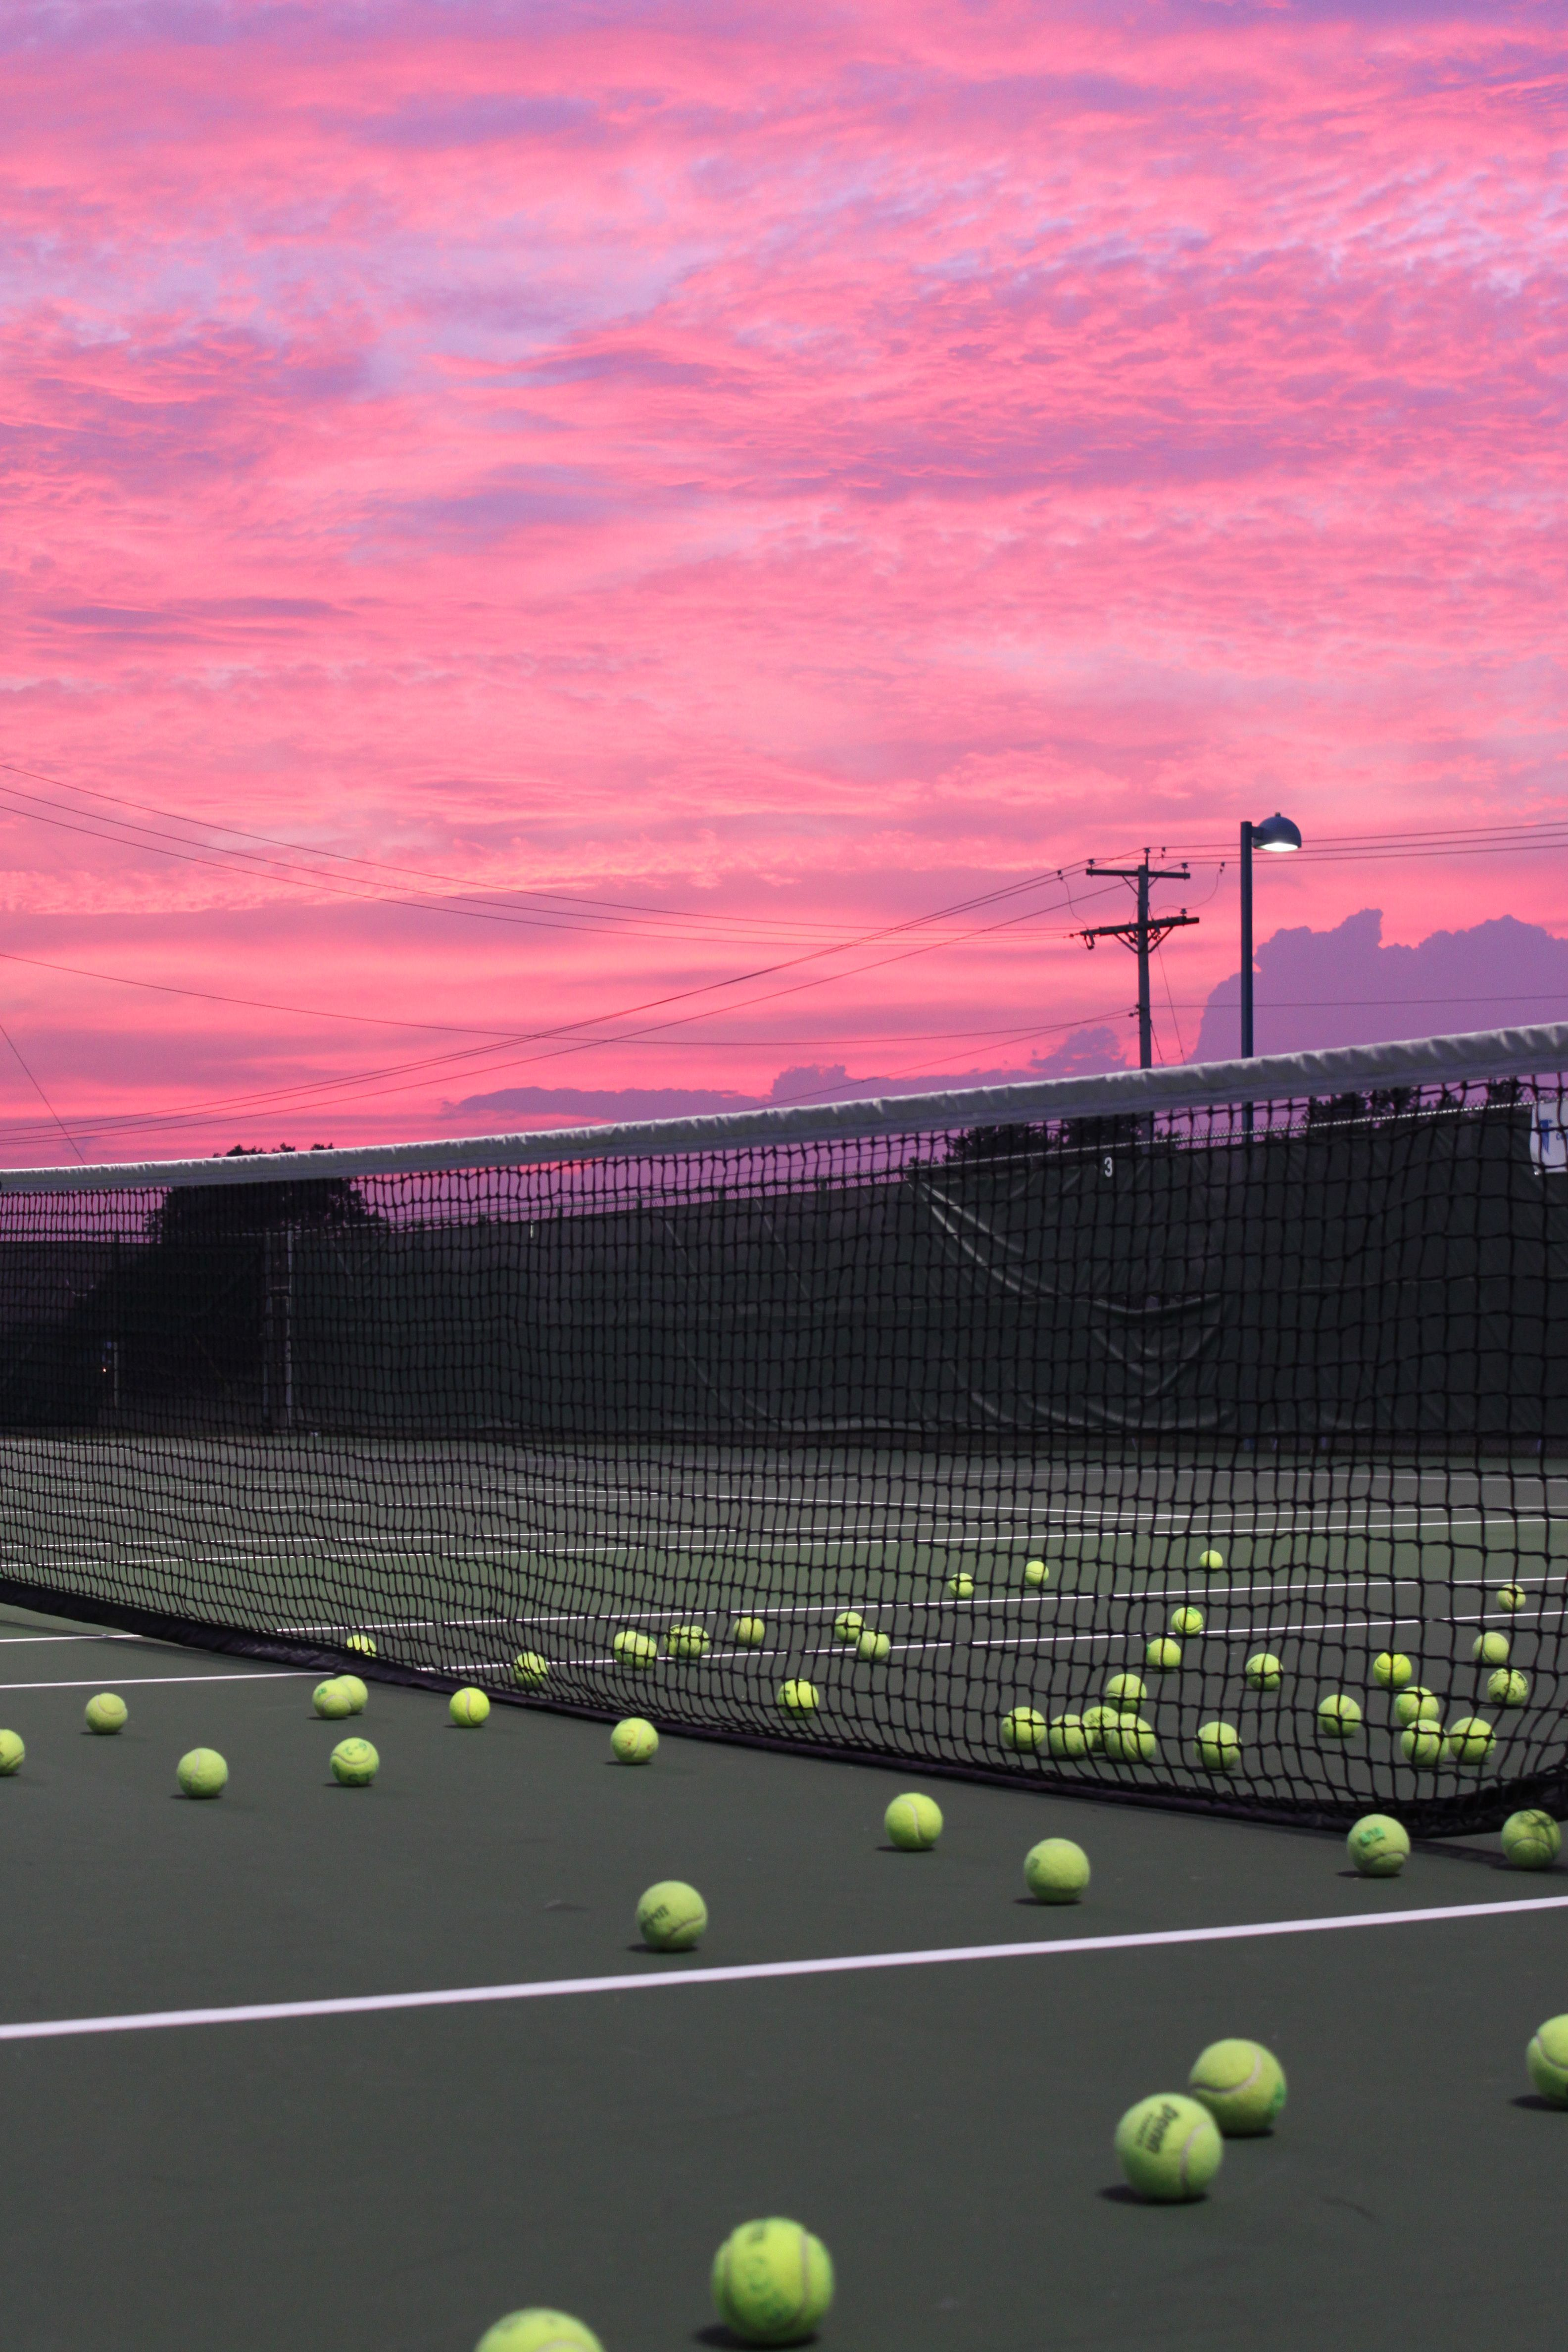 Afternoon Court Color Tennis Wallpaper Tennis Photography Tennis Art